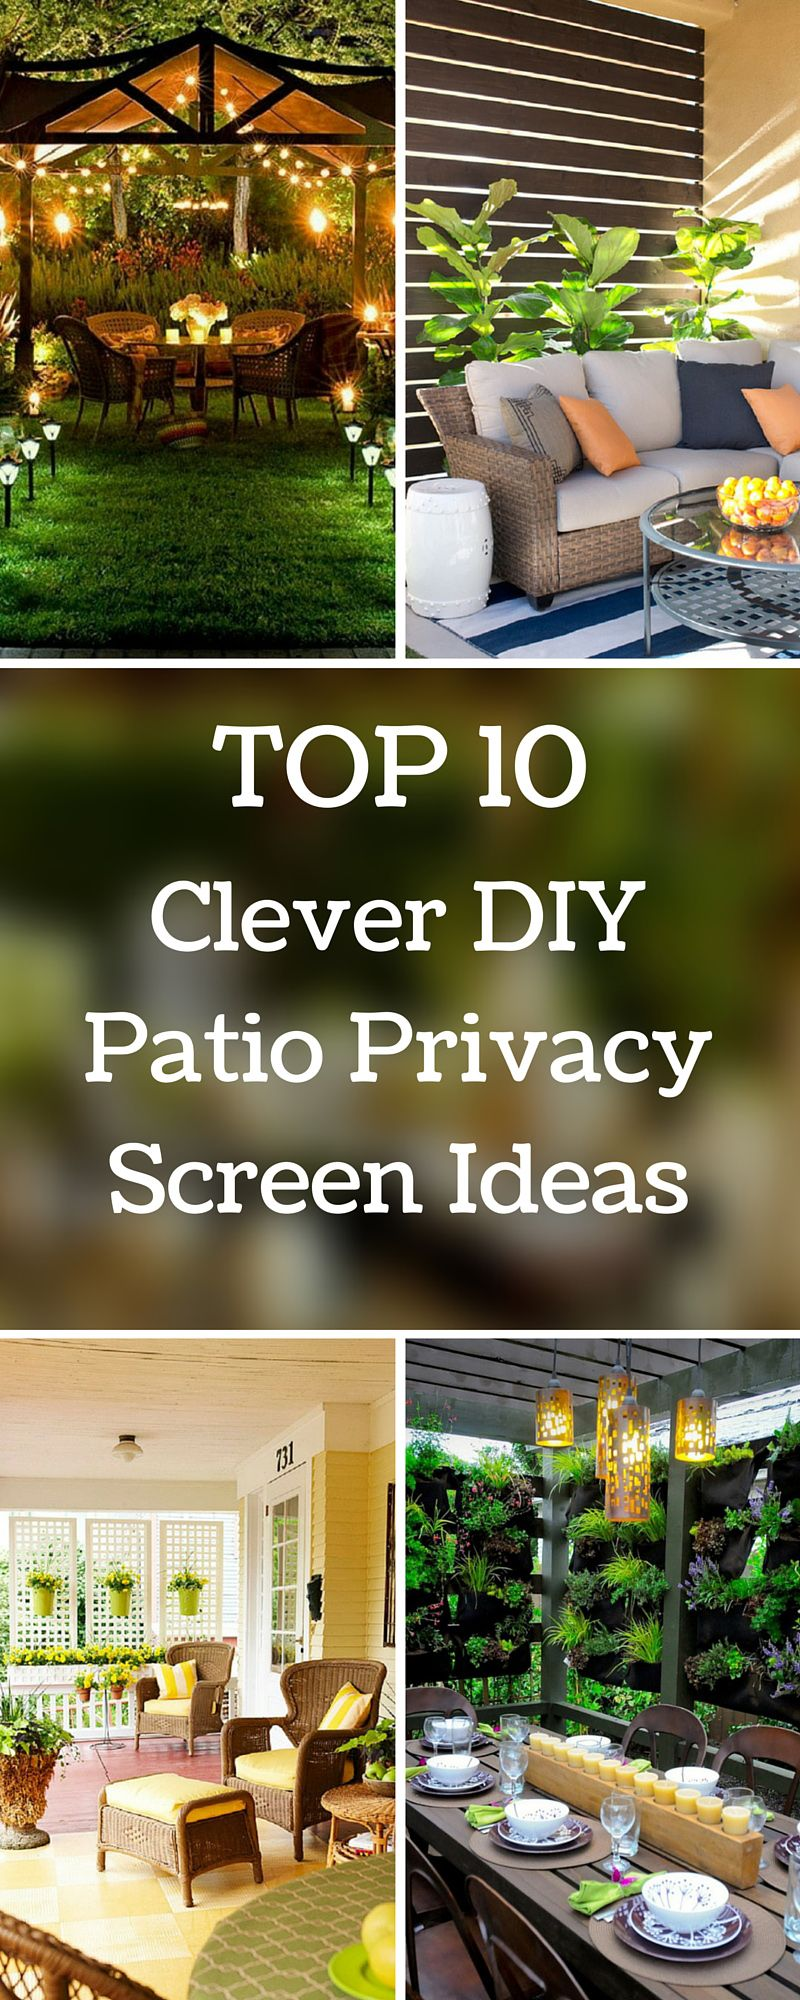 top 10 clever diy patio privacy screen ideas sitting area